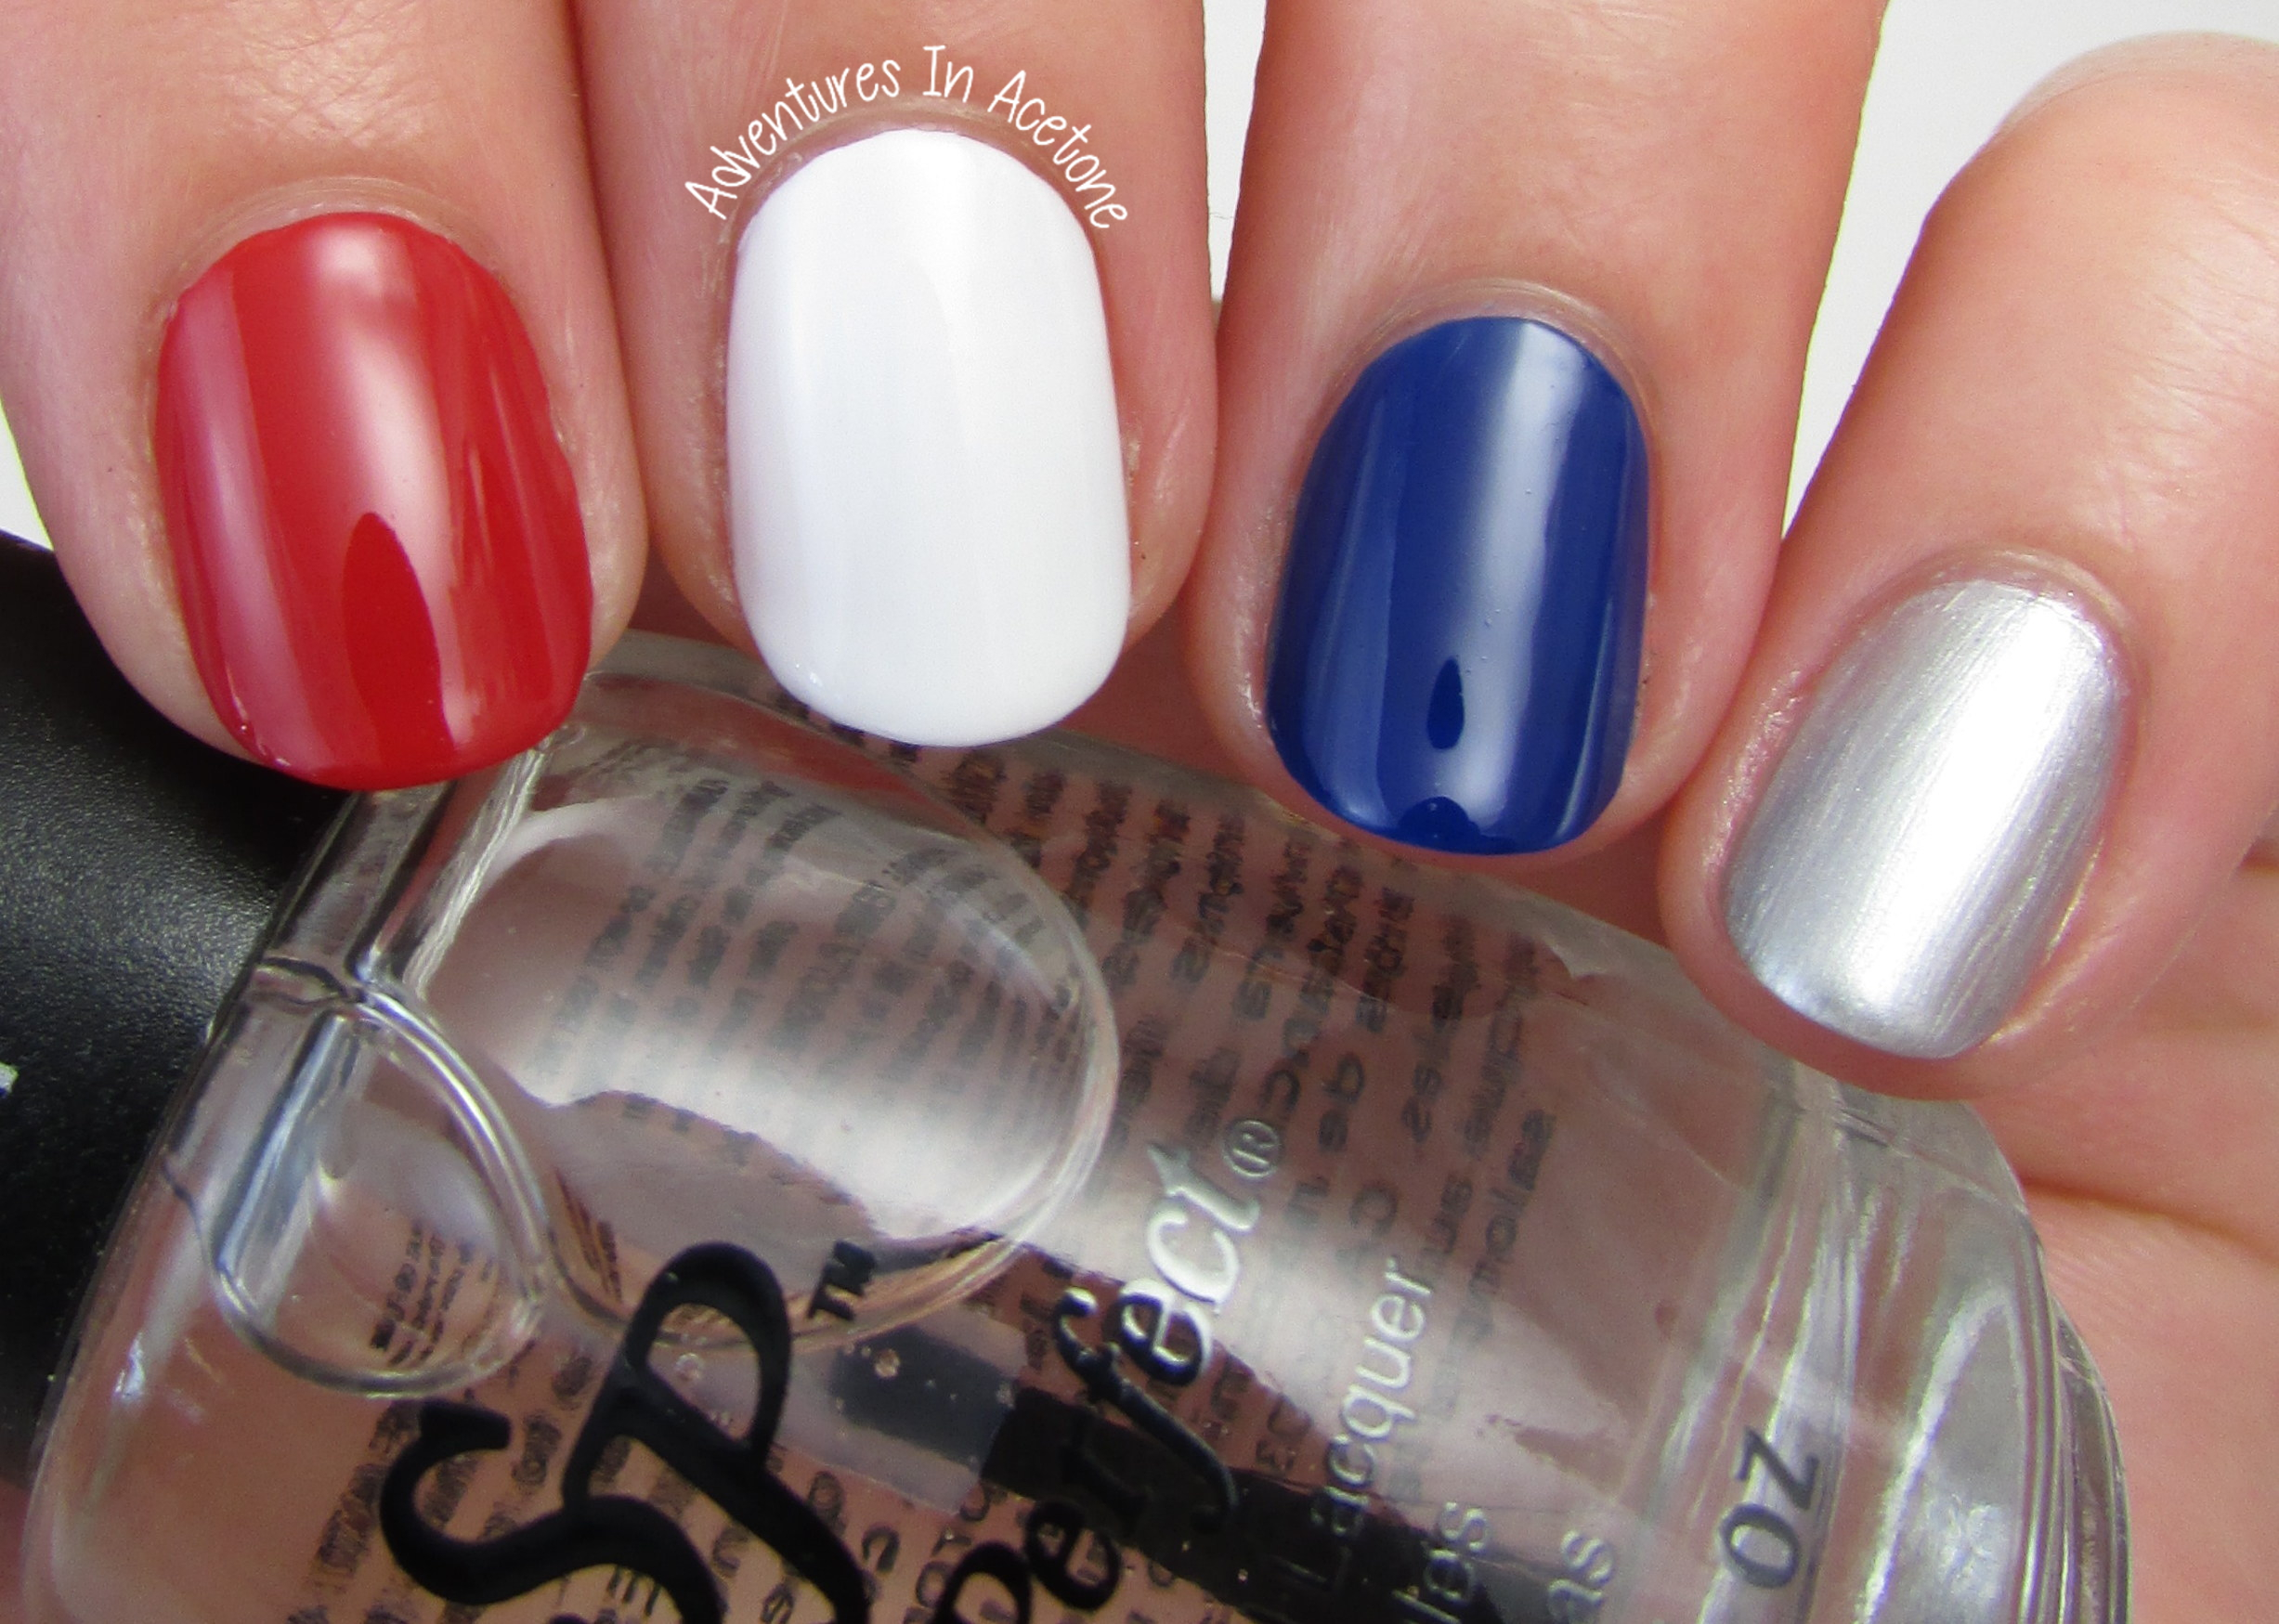 fourth of july nail art ideas with salon perfect rockin' the red